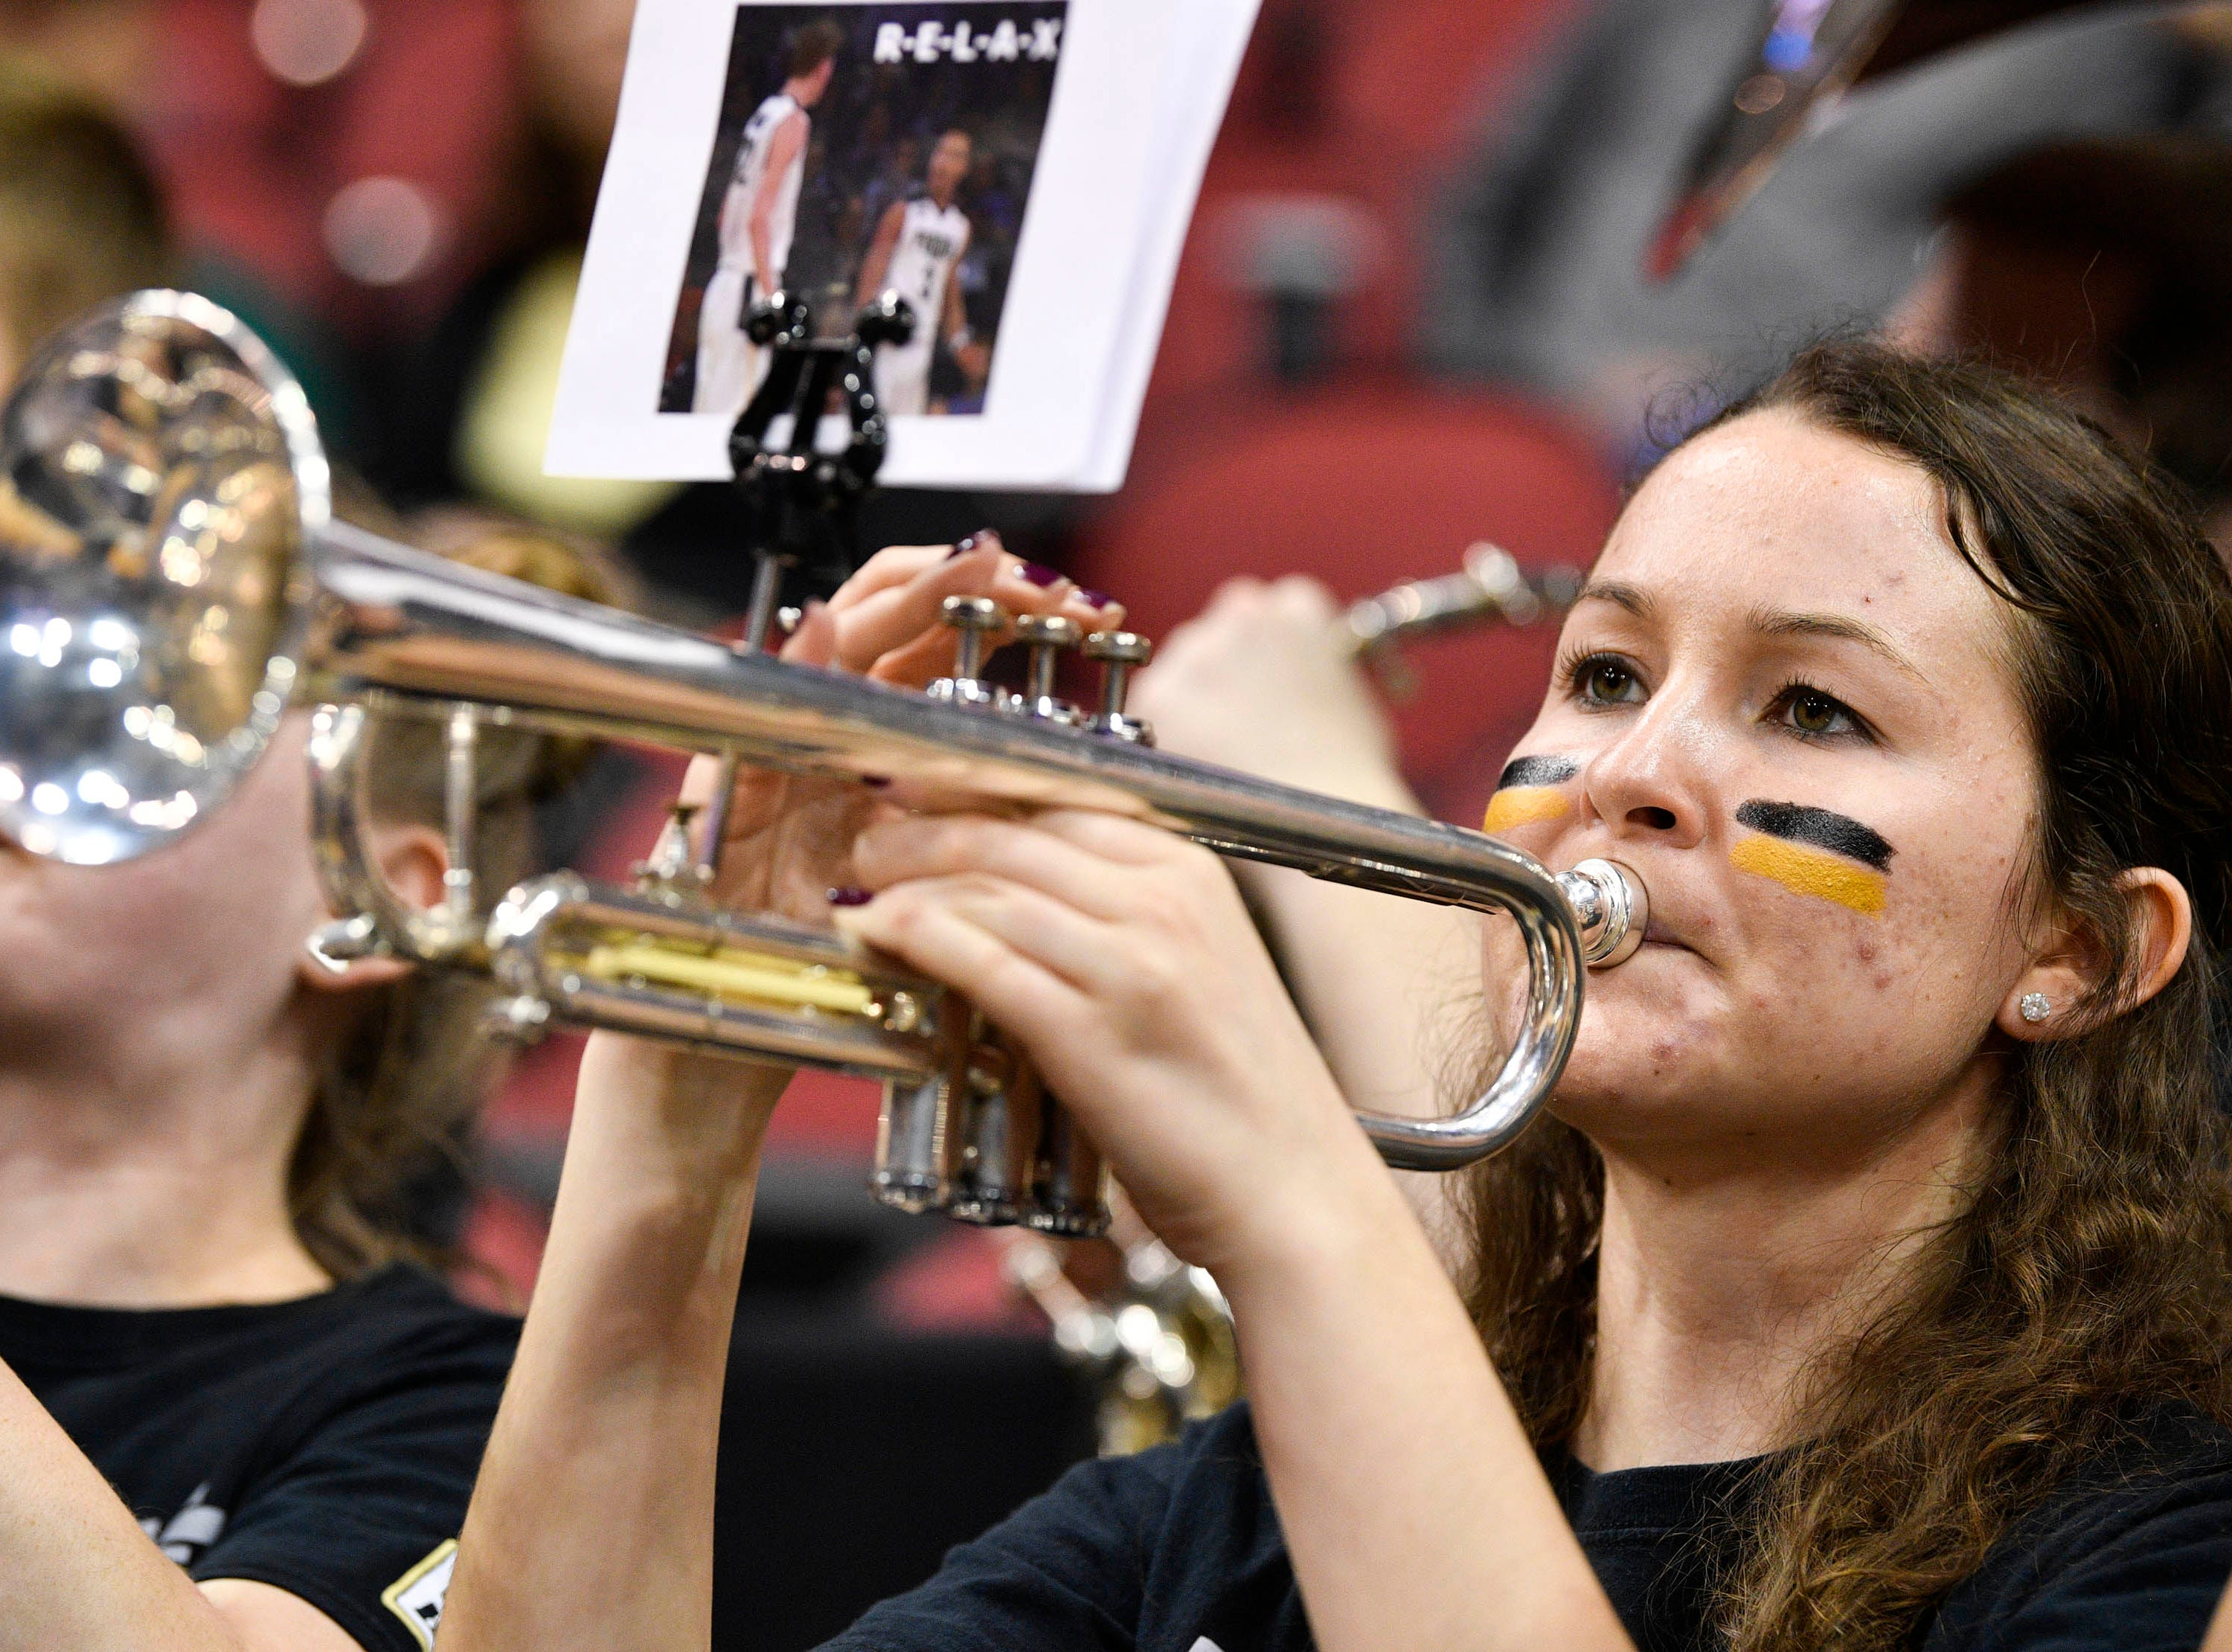 Mar 30, 2019; Louisville, KY, United States; Purdue Boilermakers band member plays before the championship game against the Virginia Cavaliers of the south regional of the 2019 NCAA Tournament at KFC Yum Center. Mandatory Credit: Jamie Rhodes-USA TODAY Sports